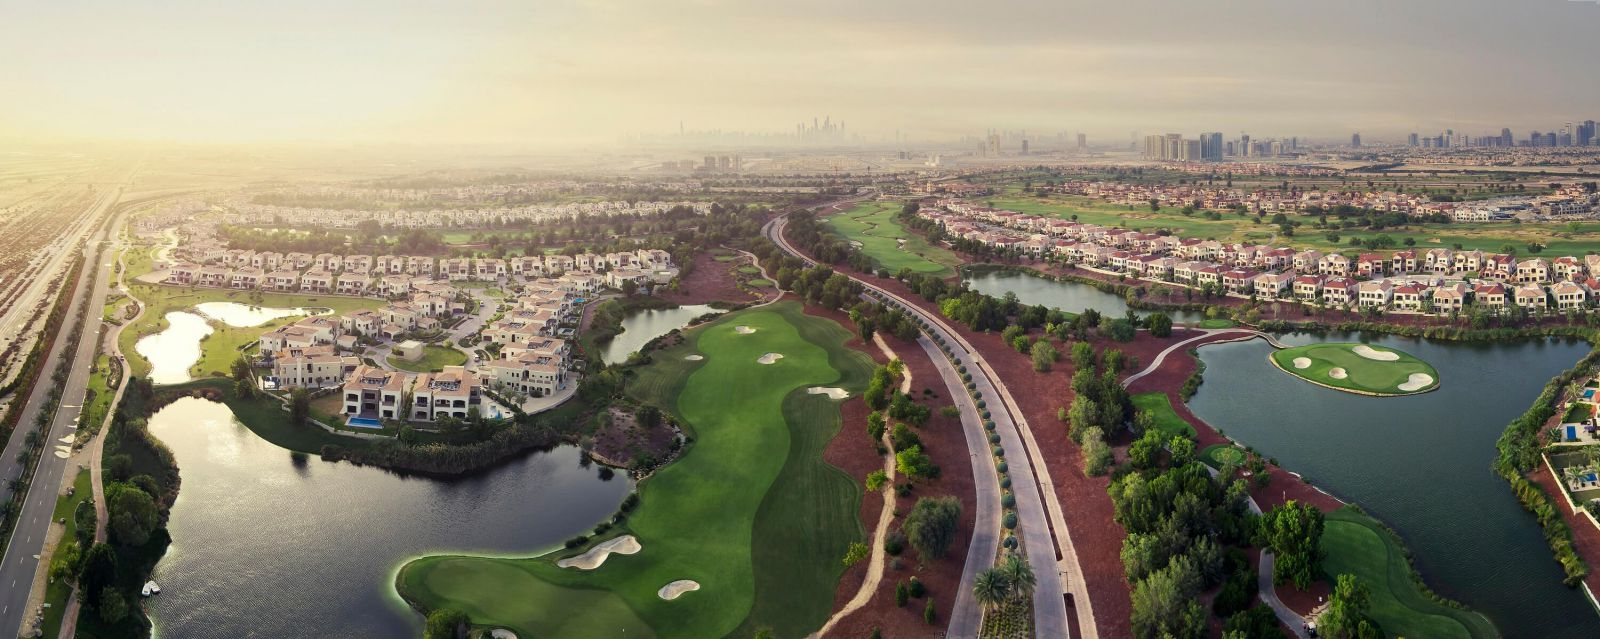 Jumeirah Golf Estates has been honoured as the Best Residential & Leisure Destination 2017 by th